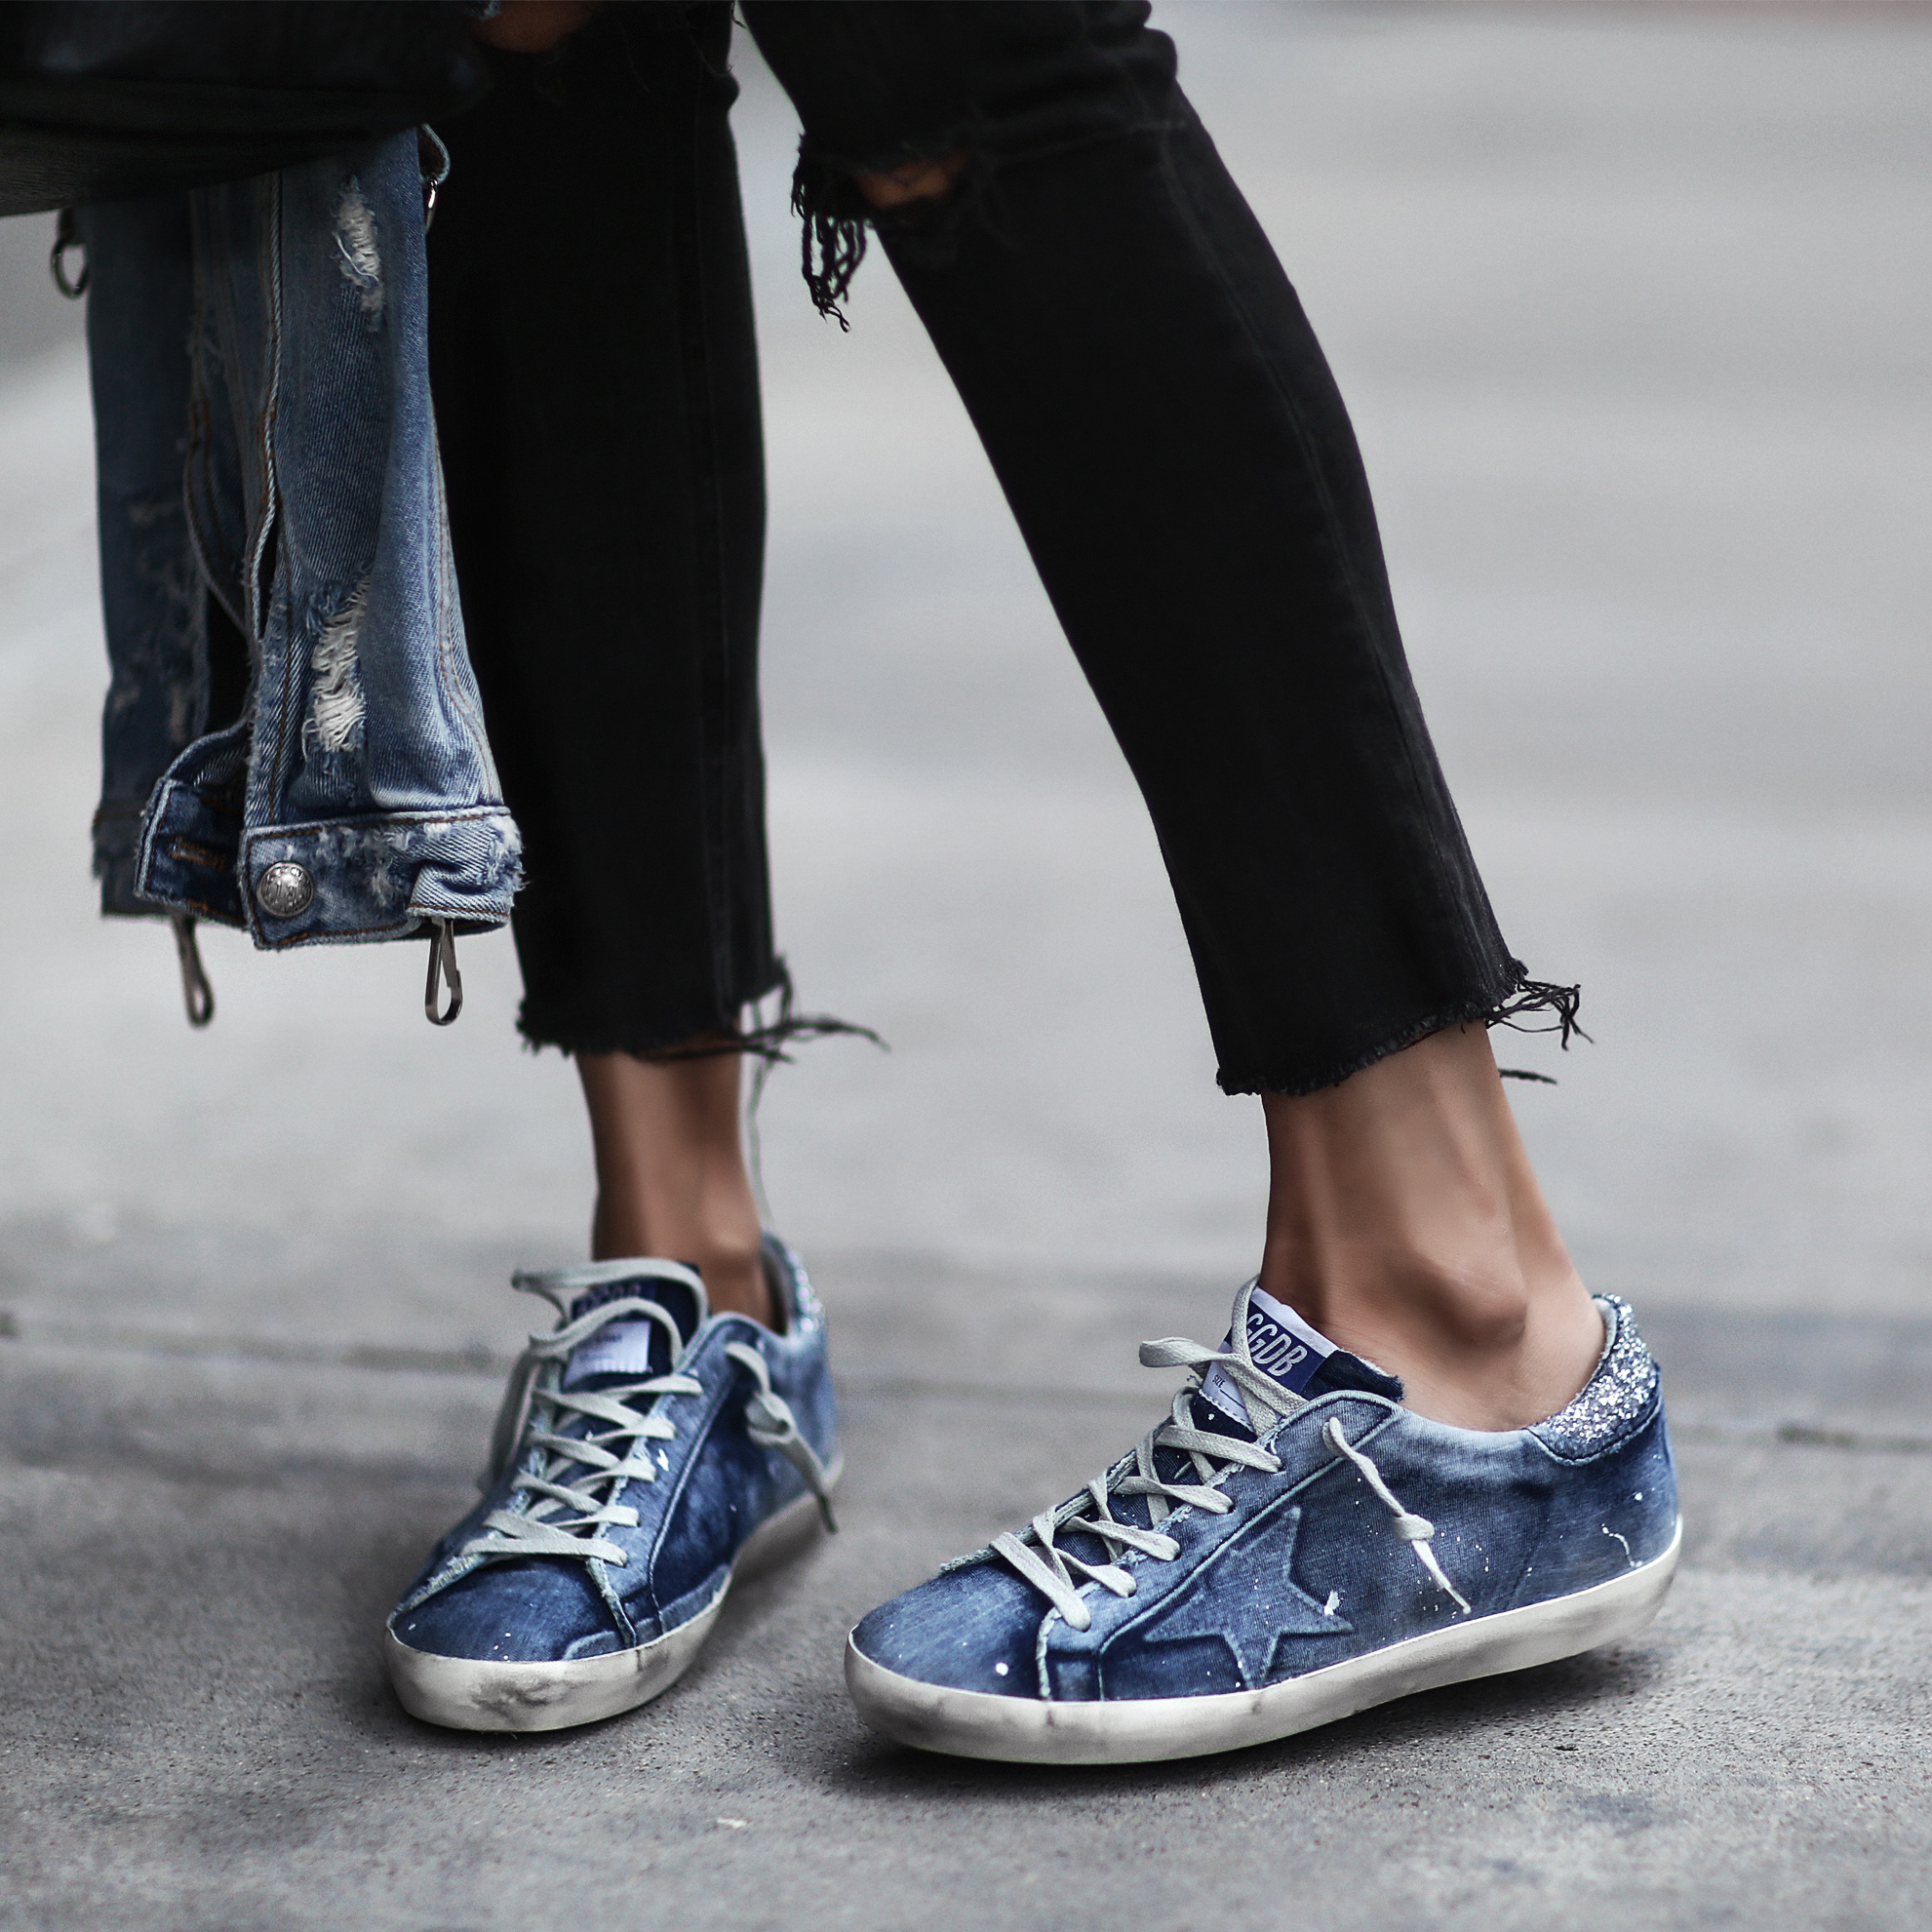 golden goose sneakers, black ripped skinny jeans, denim jacket